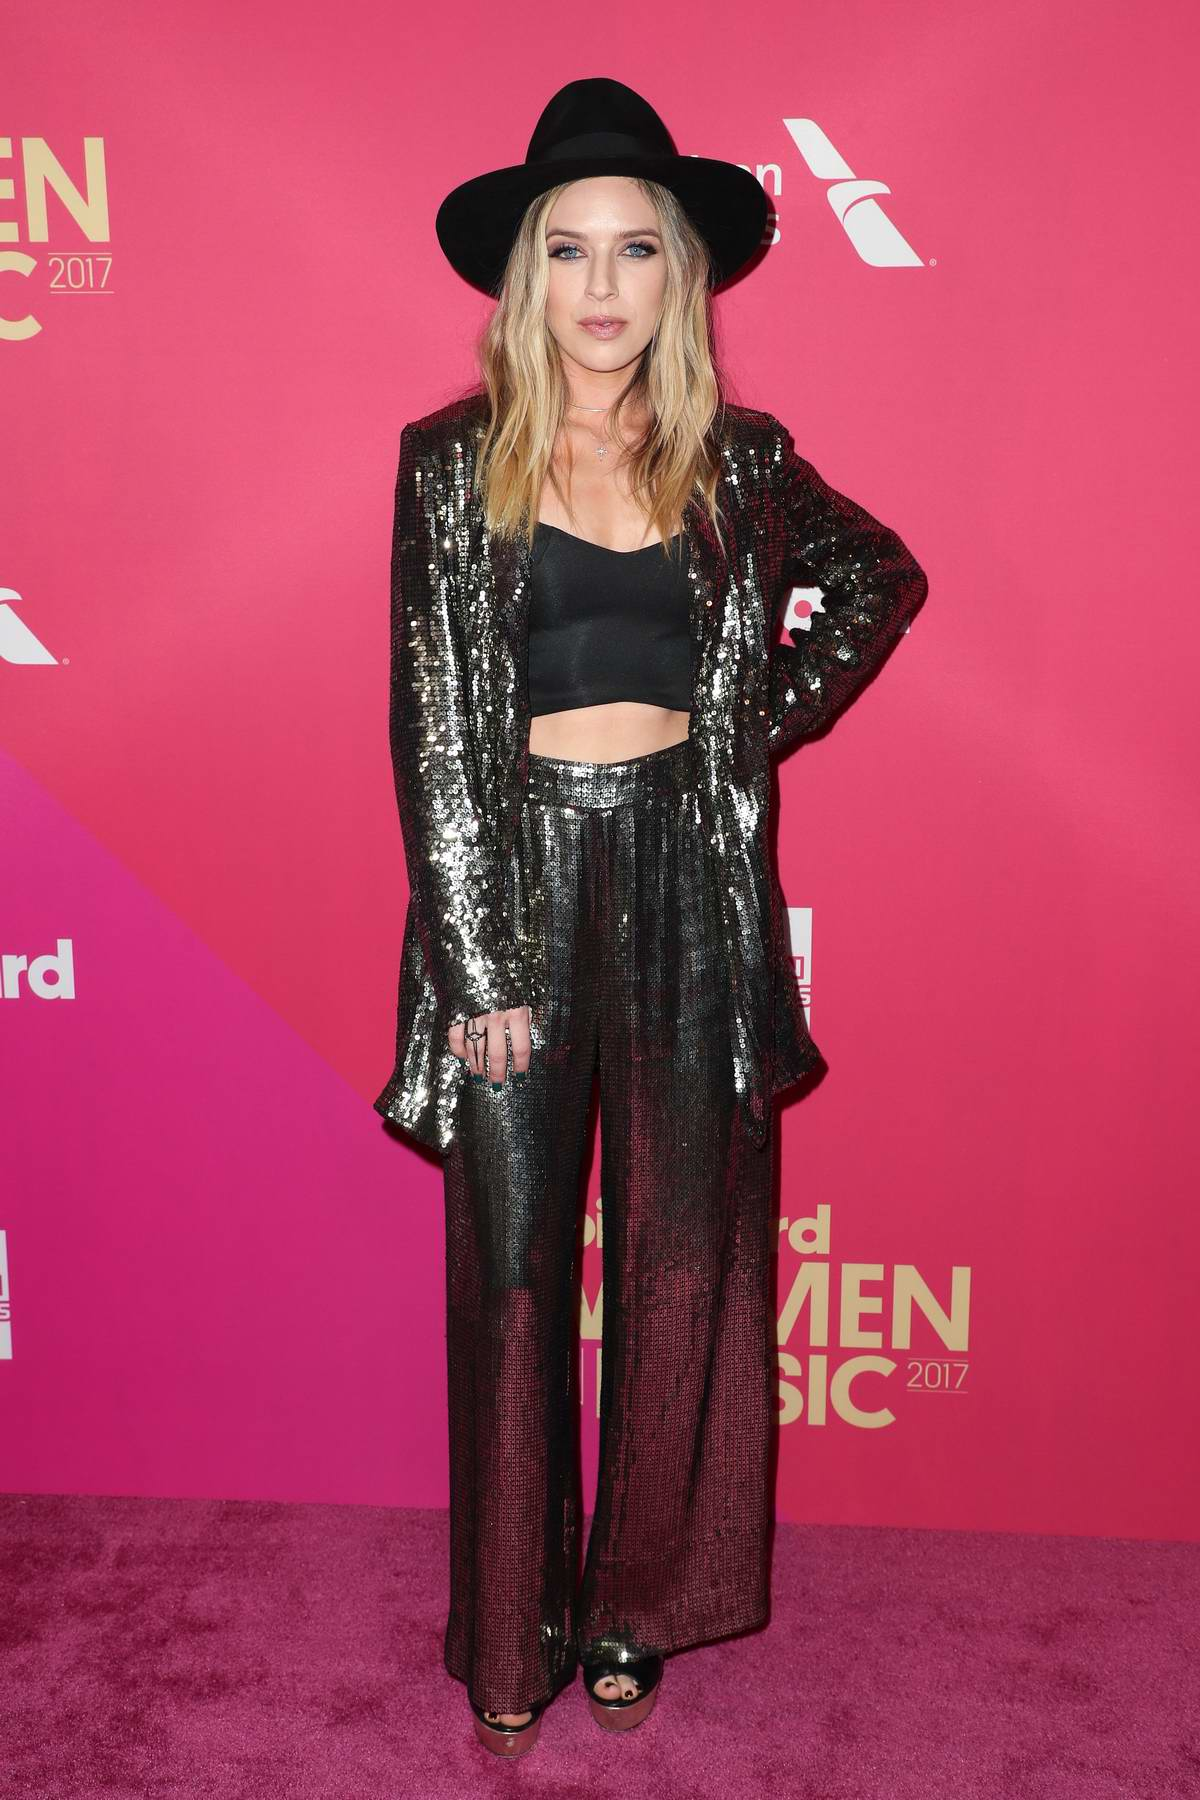 ZZ Ward at the 2017 Billboard Women in Music in Los Angeles